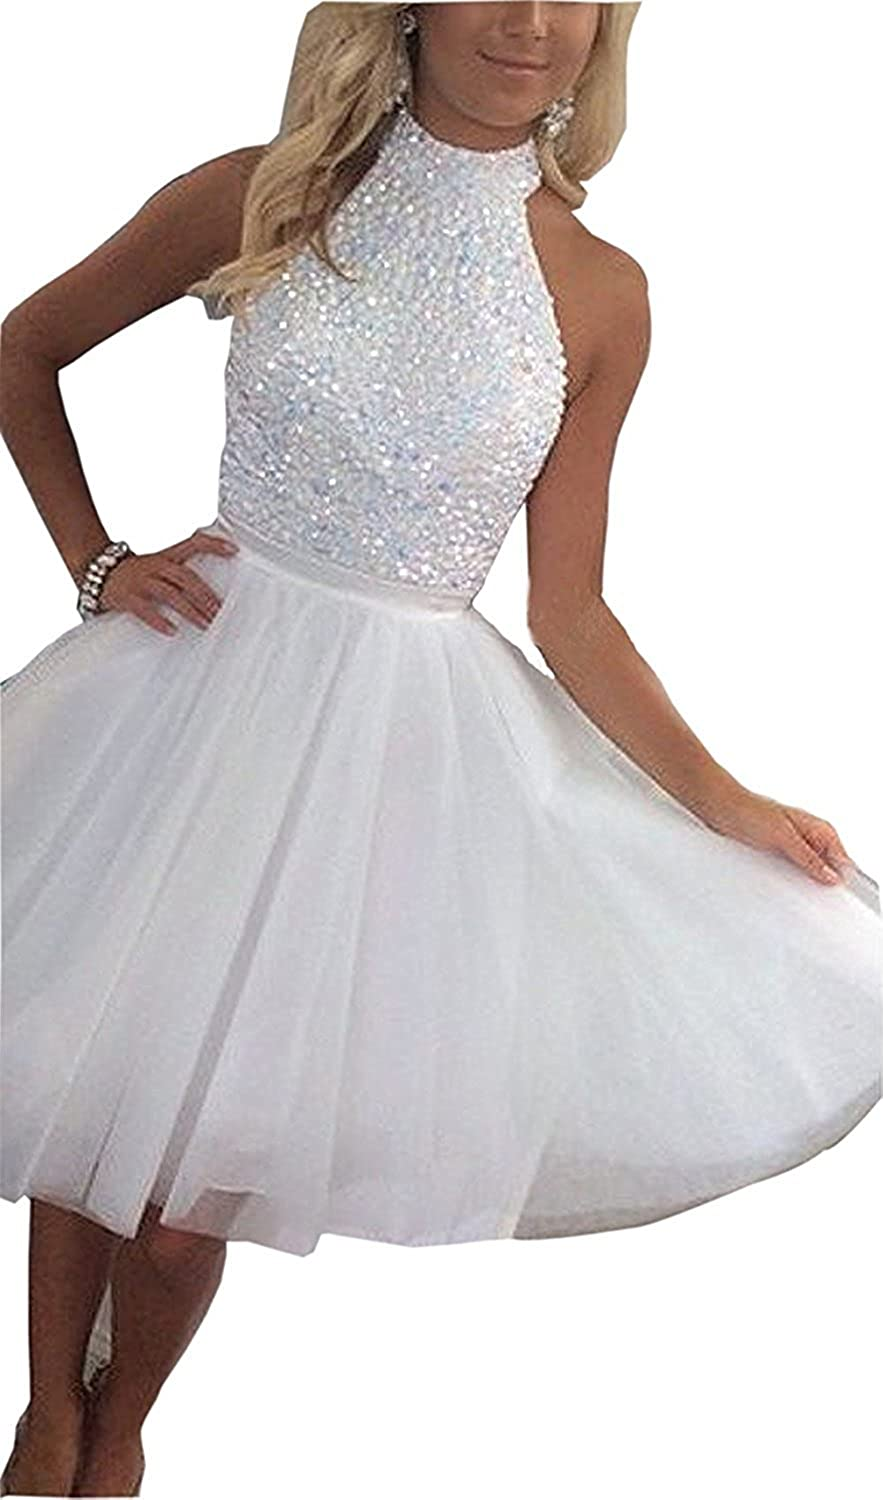 Nina Ninading Tulle Keyhole Back Short A-Line Prom Party Gowns Homecoming Dress NND063